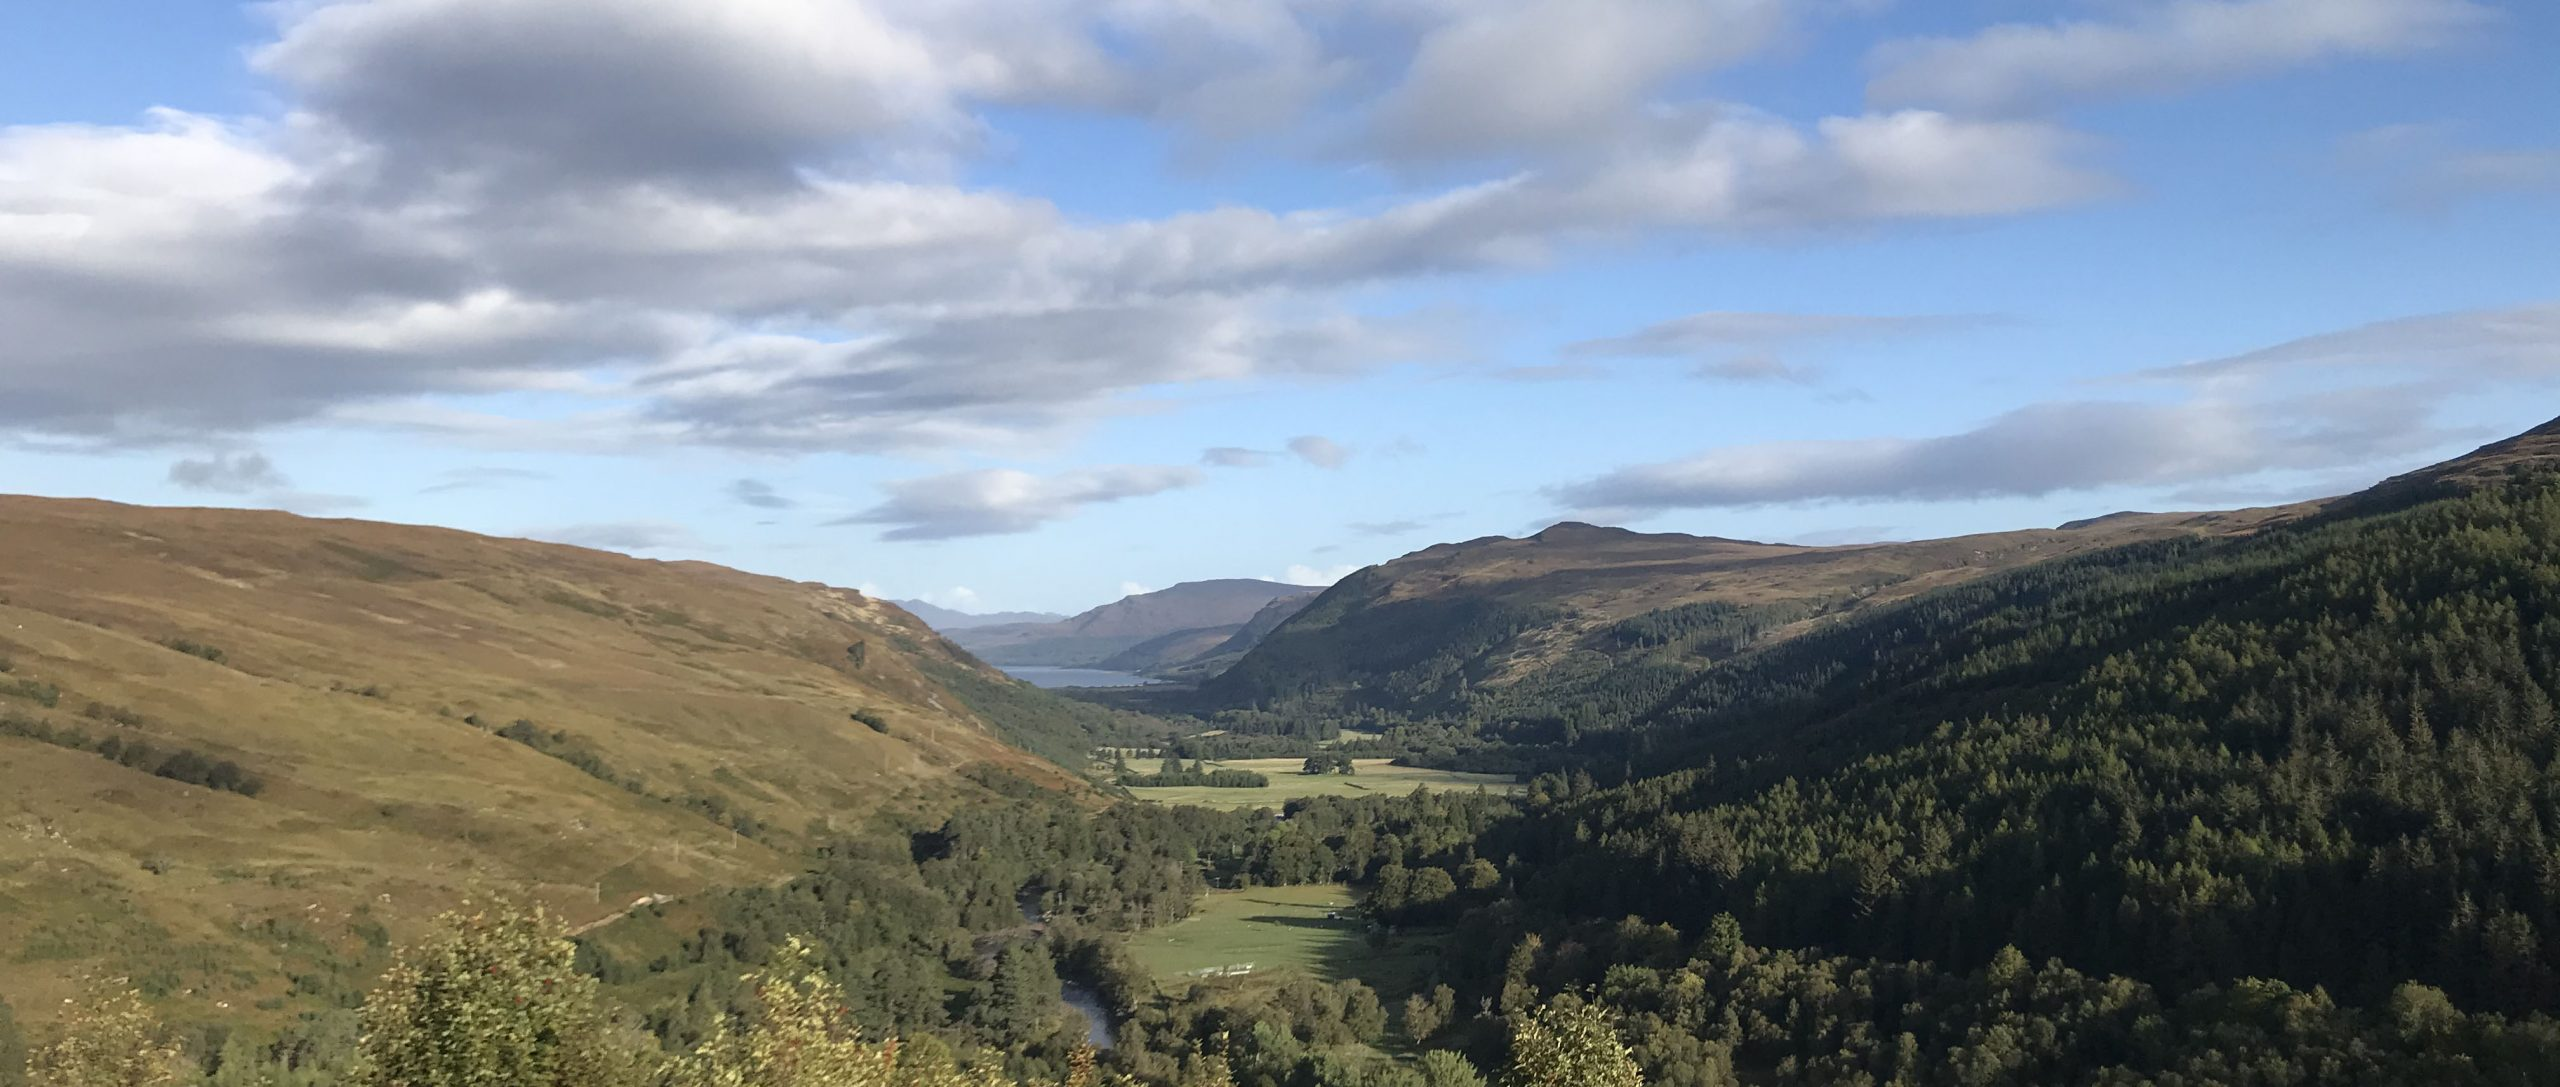 STAYCATION IN SCOTLAND – THE NORTH COAST 500 (TAKE 2!)